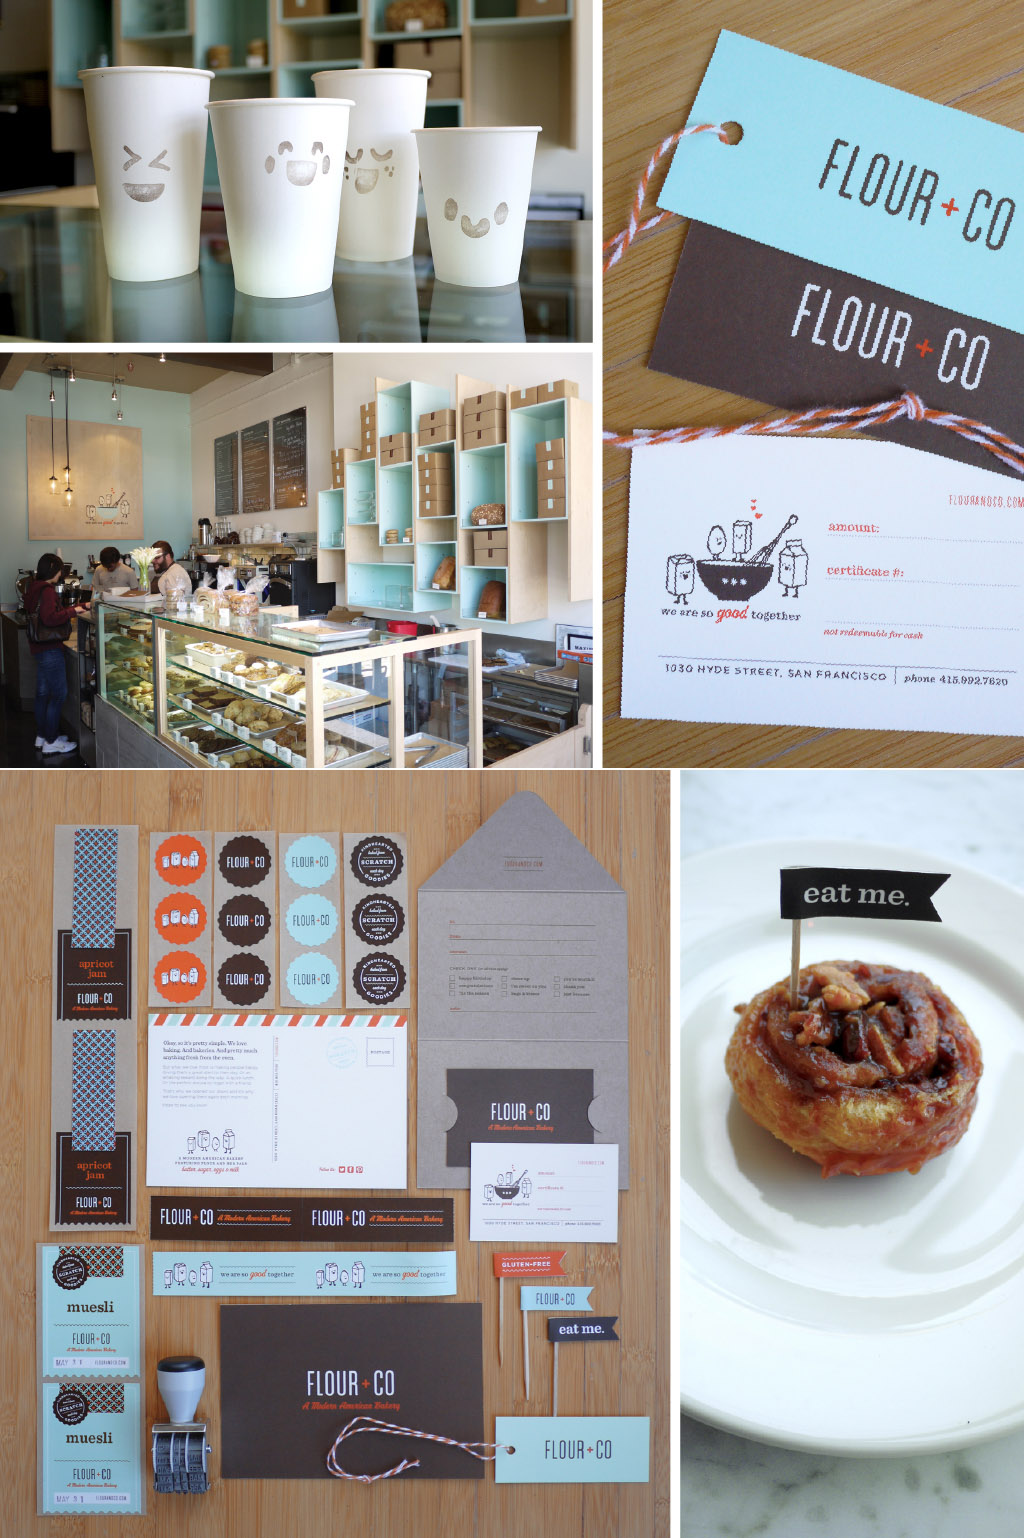 Flour + Co Identity by Rubber Design